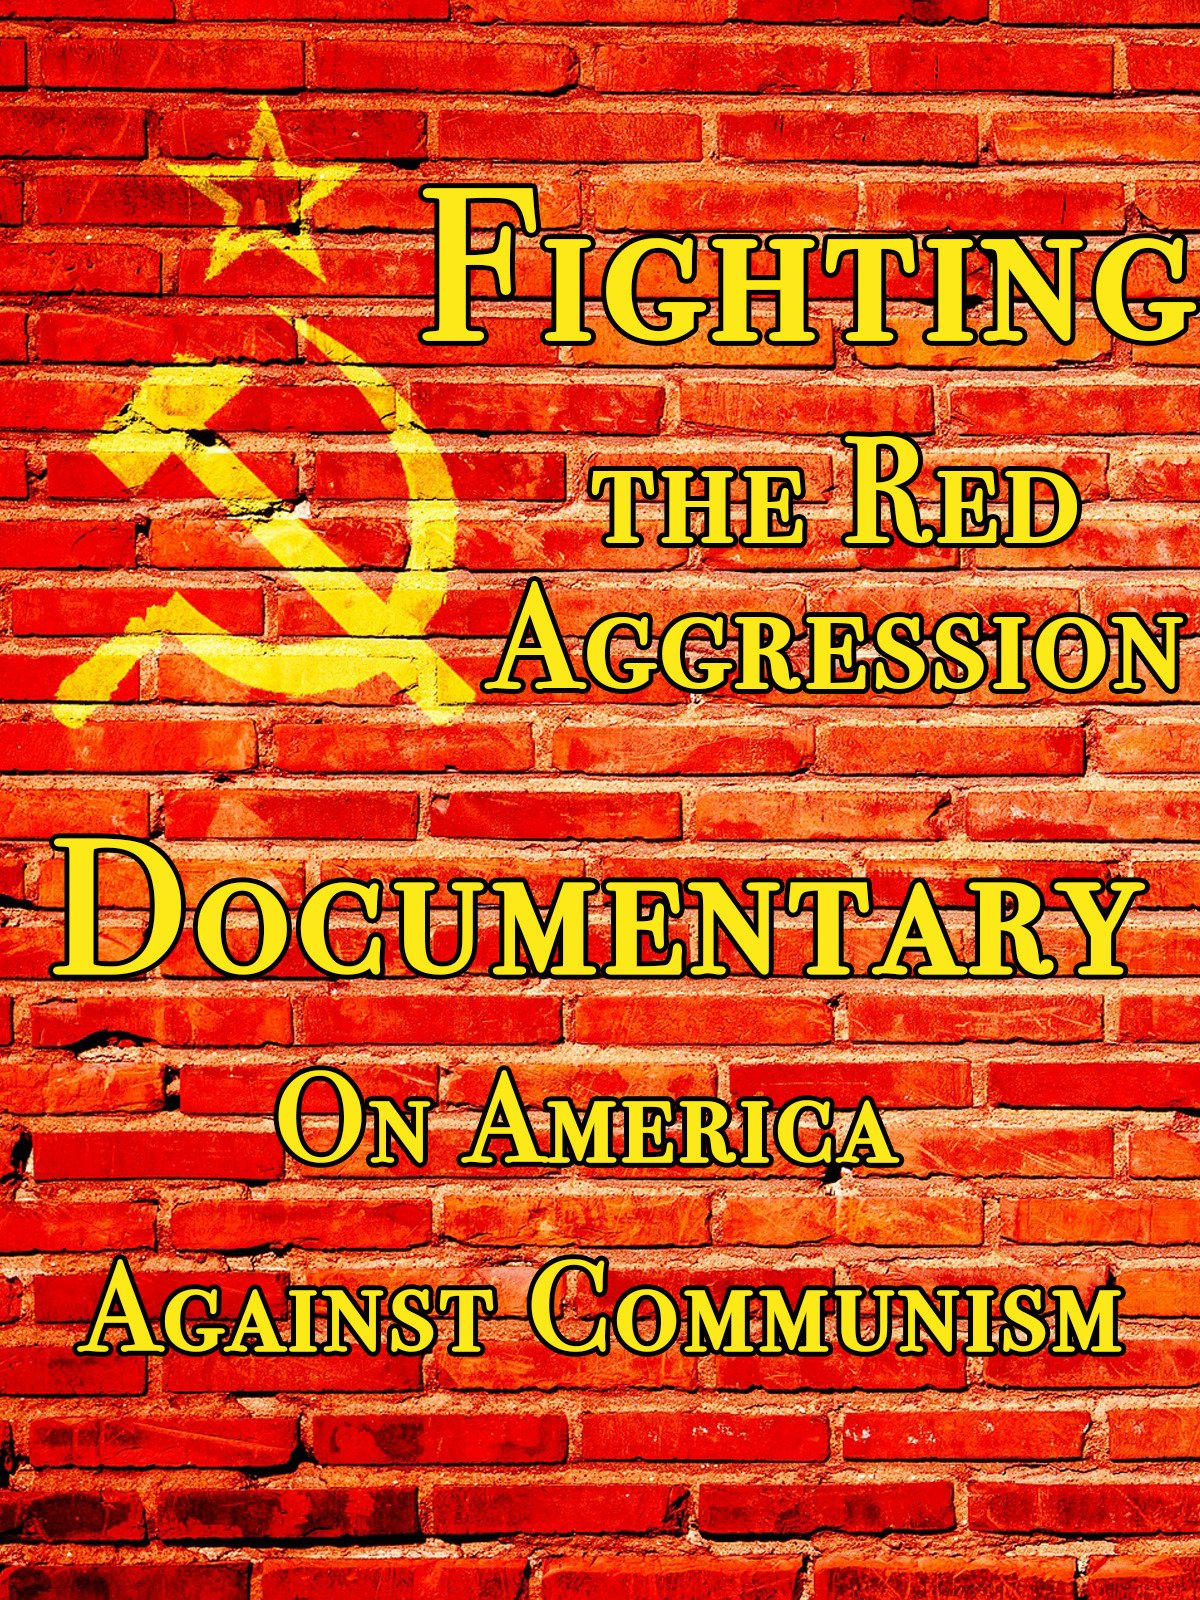 Fighting the Red Aggression Documentary on America Against Communism